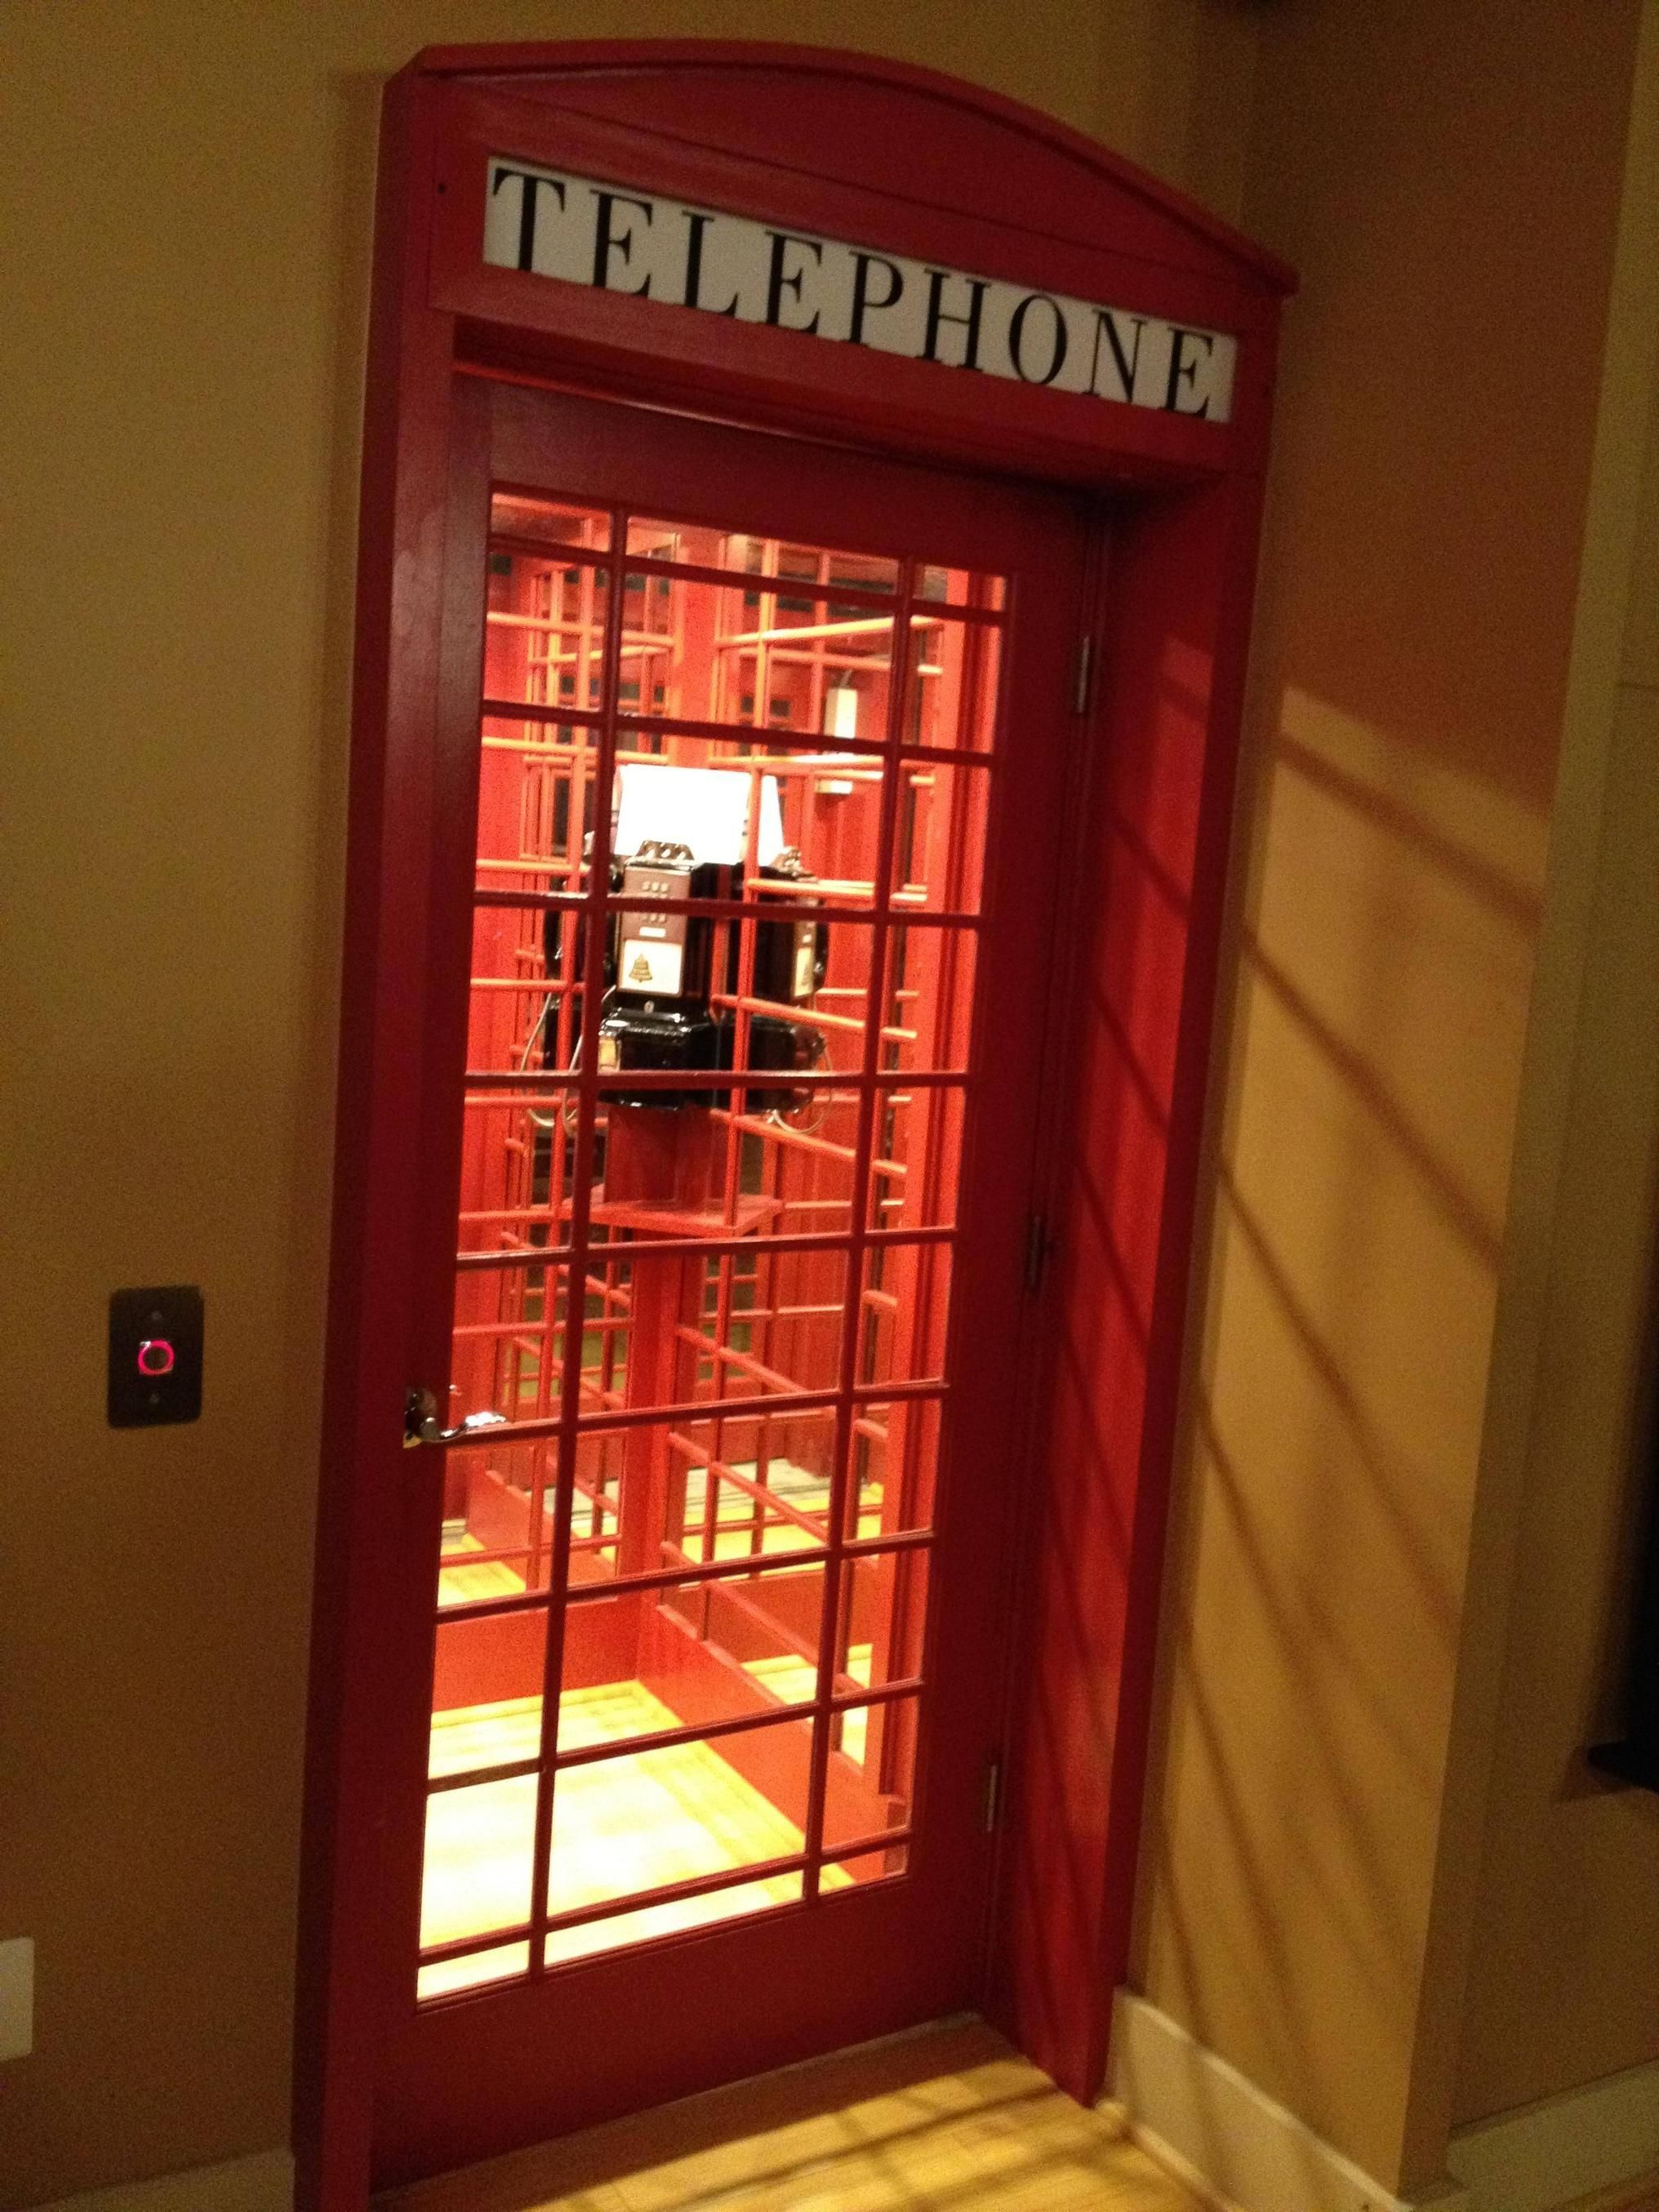 If I ever need an elevator in my house, this is happening.